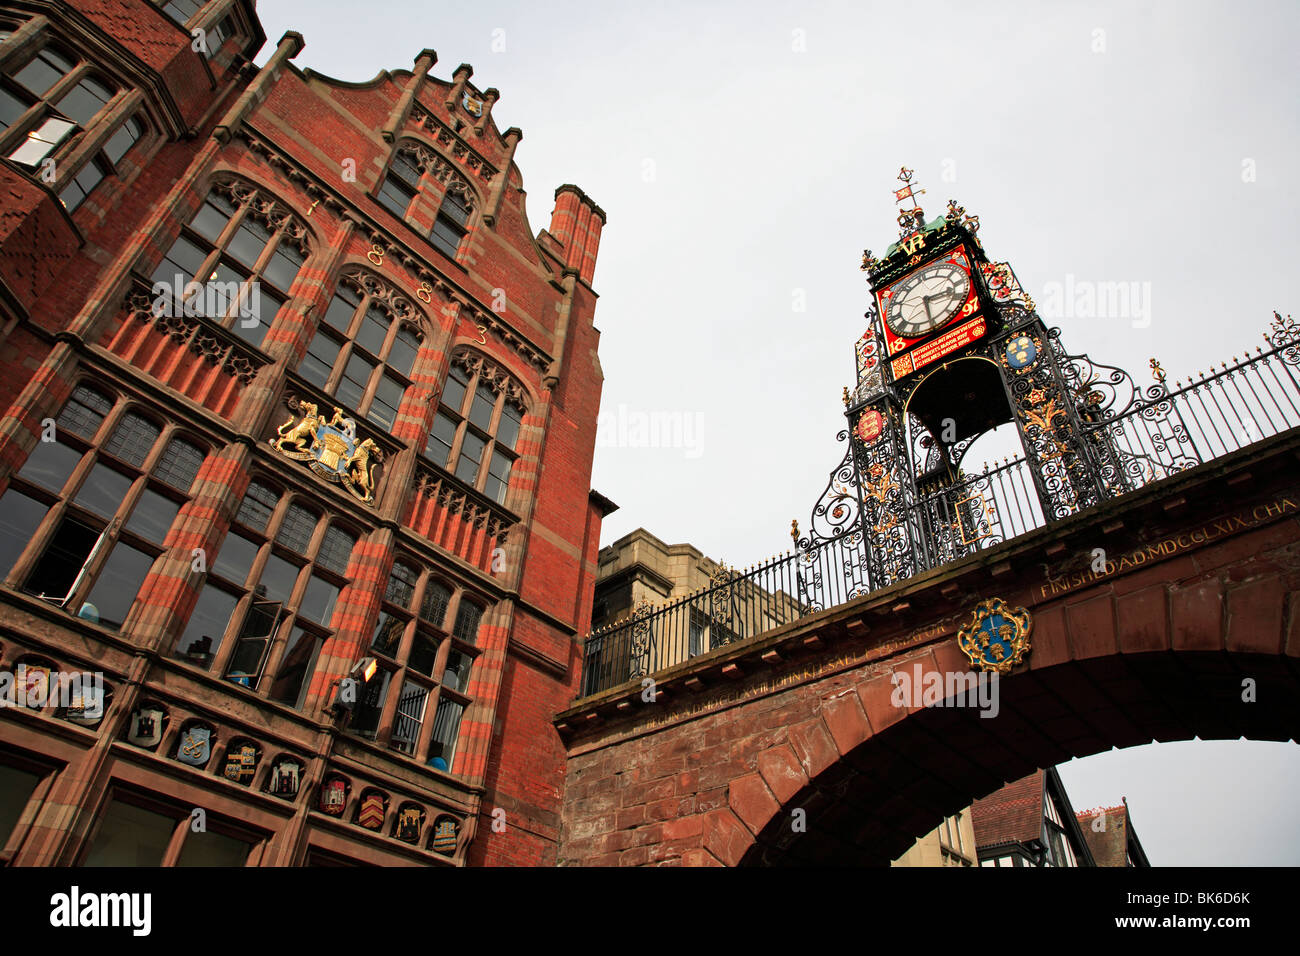 lock Tower Eastgate Street Chester City England UK United Kingdom EU European Union Europe - Stock Image